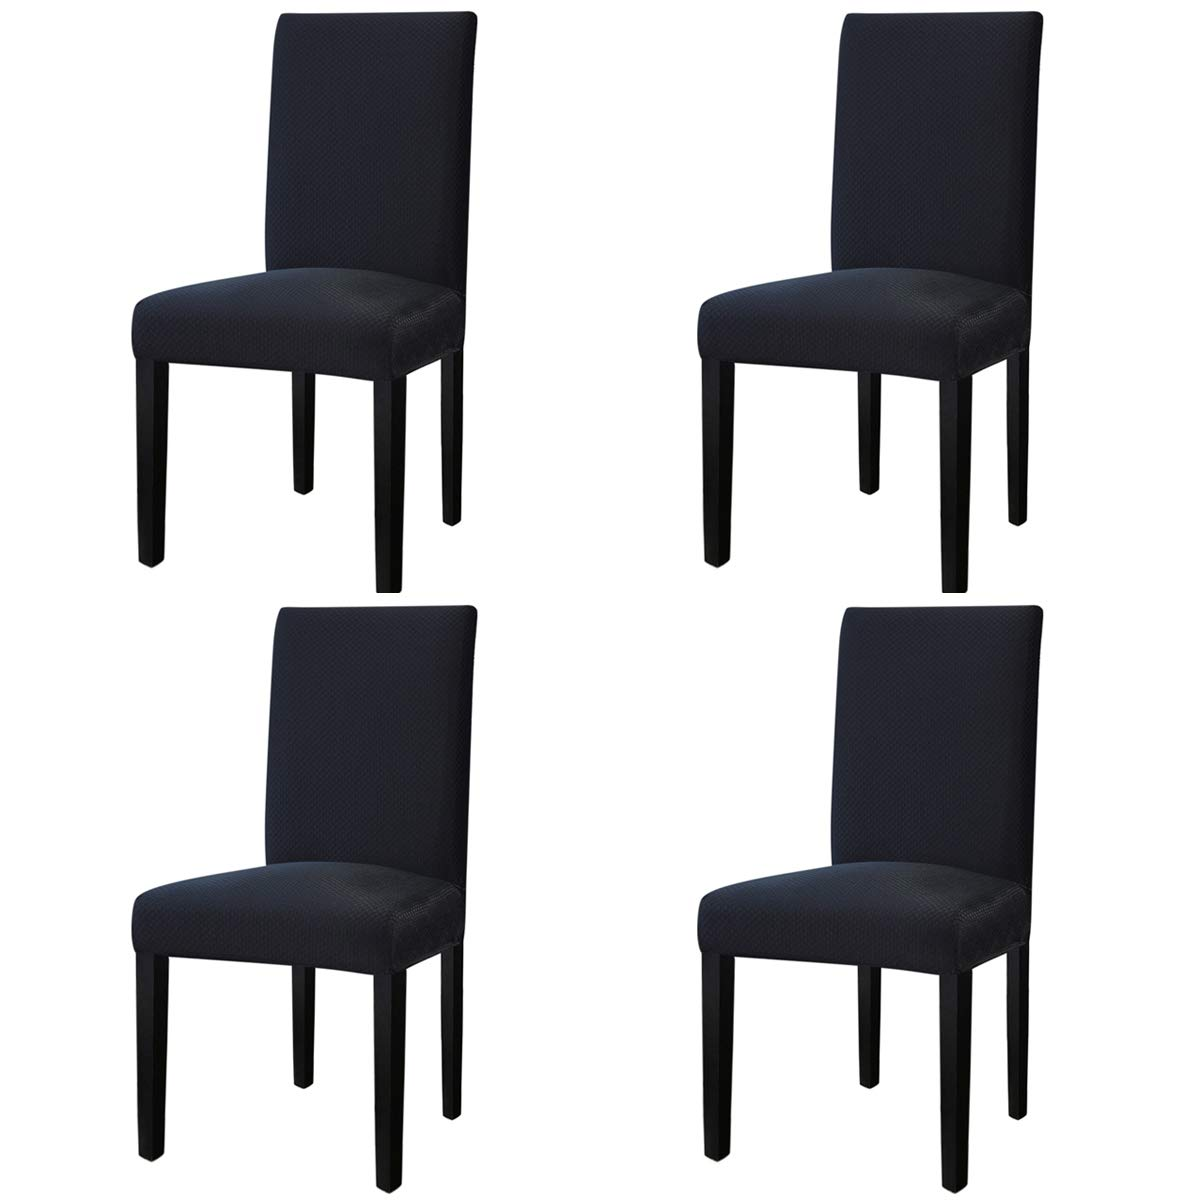 Easy-Going Stretch Dining Room Chair Slipcovers Parsons Chair Slipcovers Protector Soft Removable Washable(M4 Pieces,Square, Black)